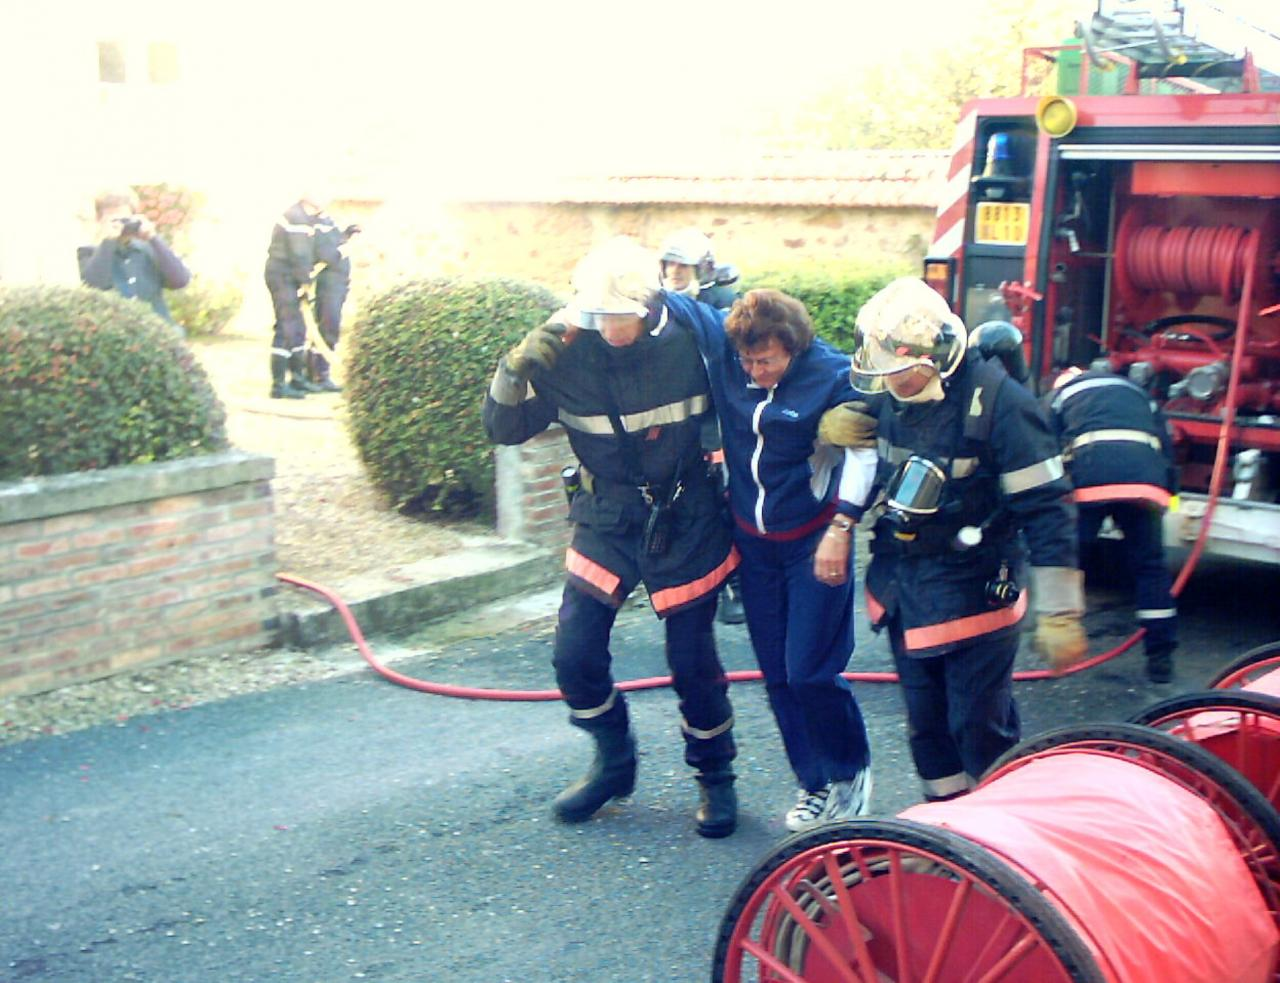 intervention des pompiers 9.10.05